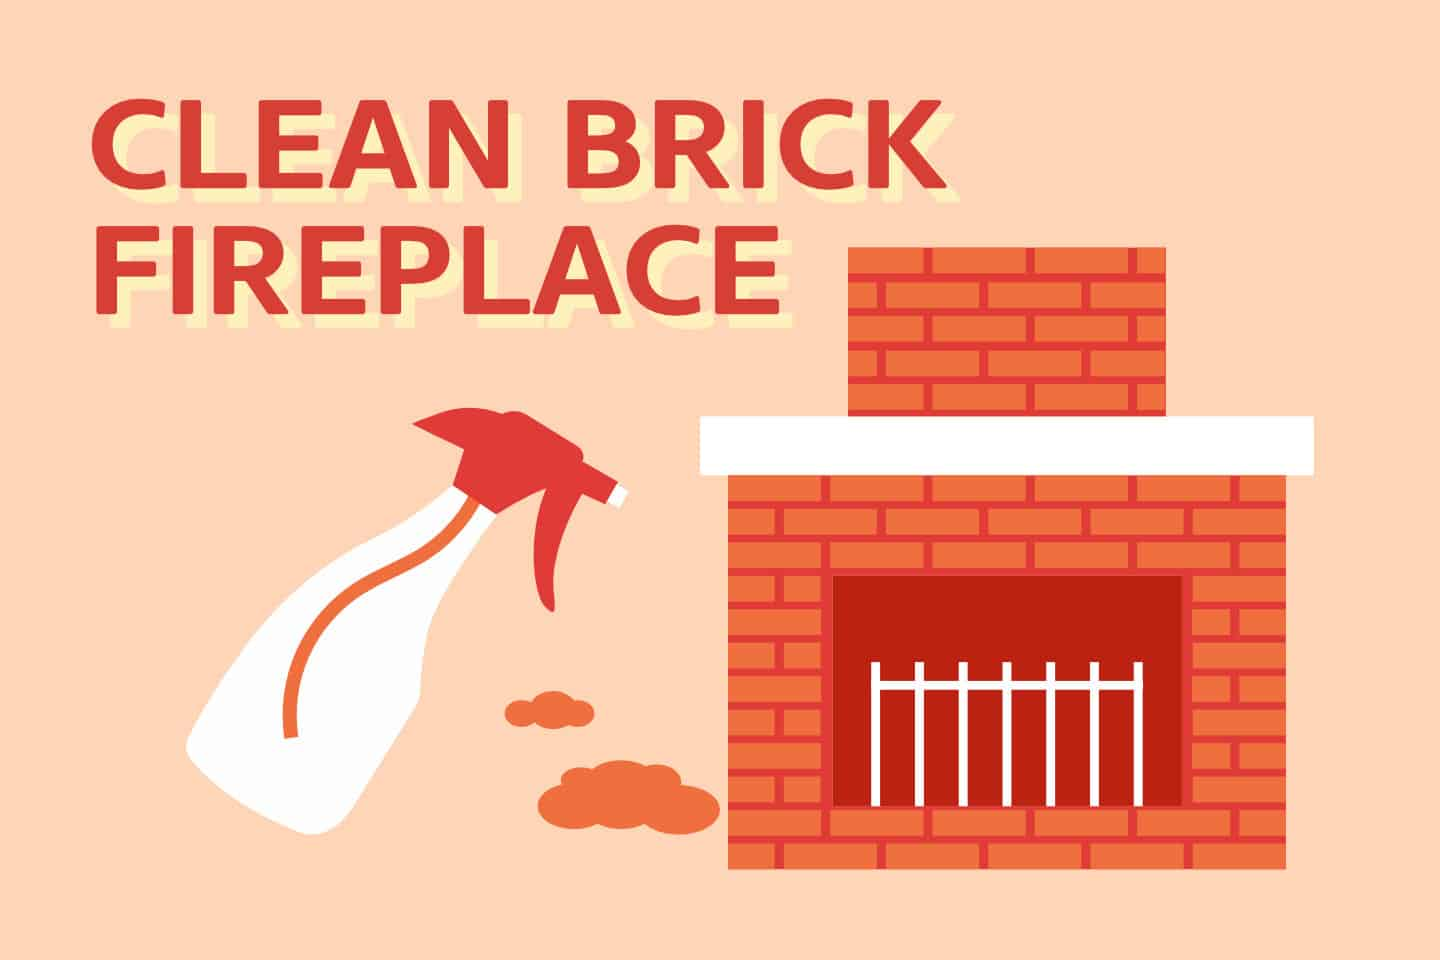 How To Clean Brick Fireplace [2 Best Ways]